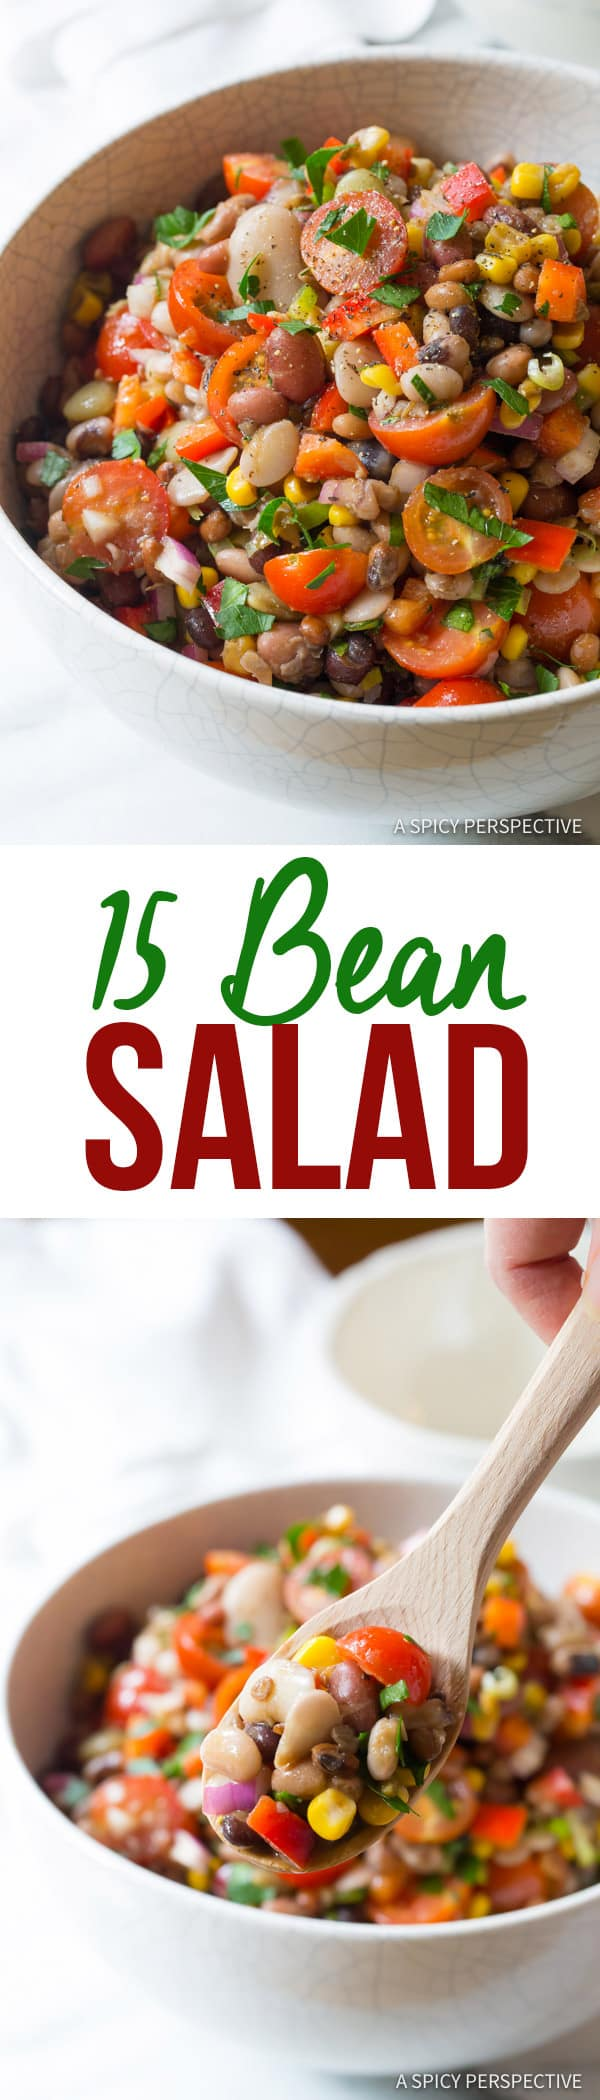 Fresh Healthy 15 Bean Salad Recipe | ASpicyPerspective.com